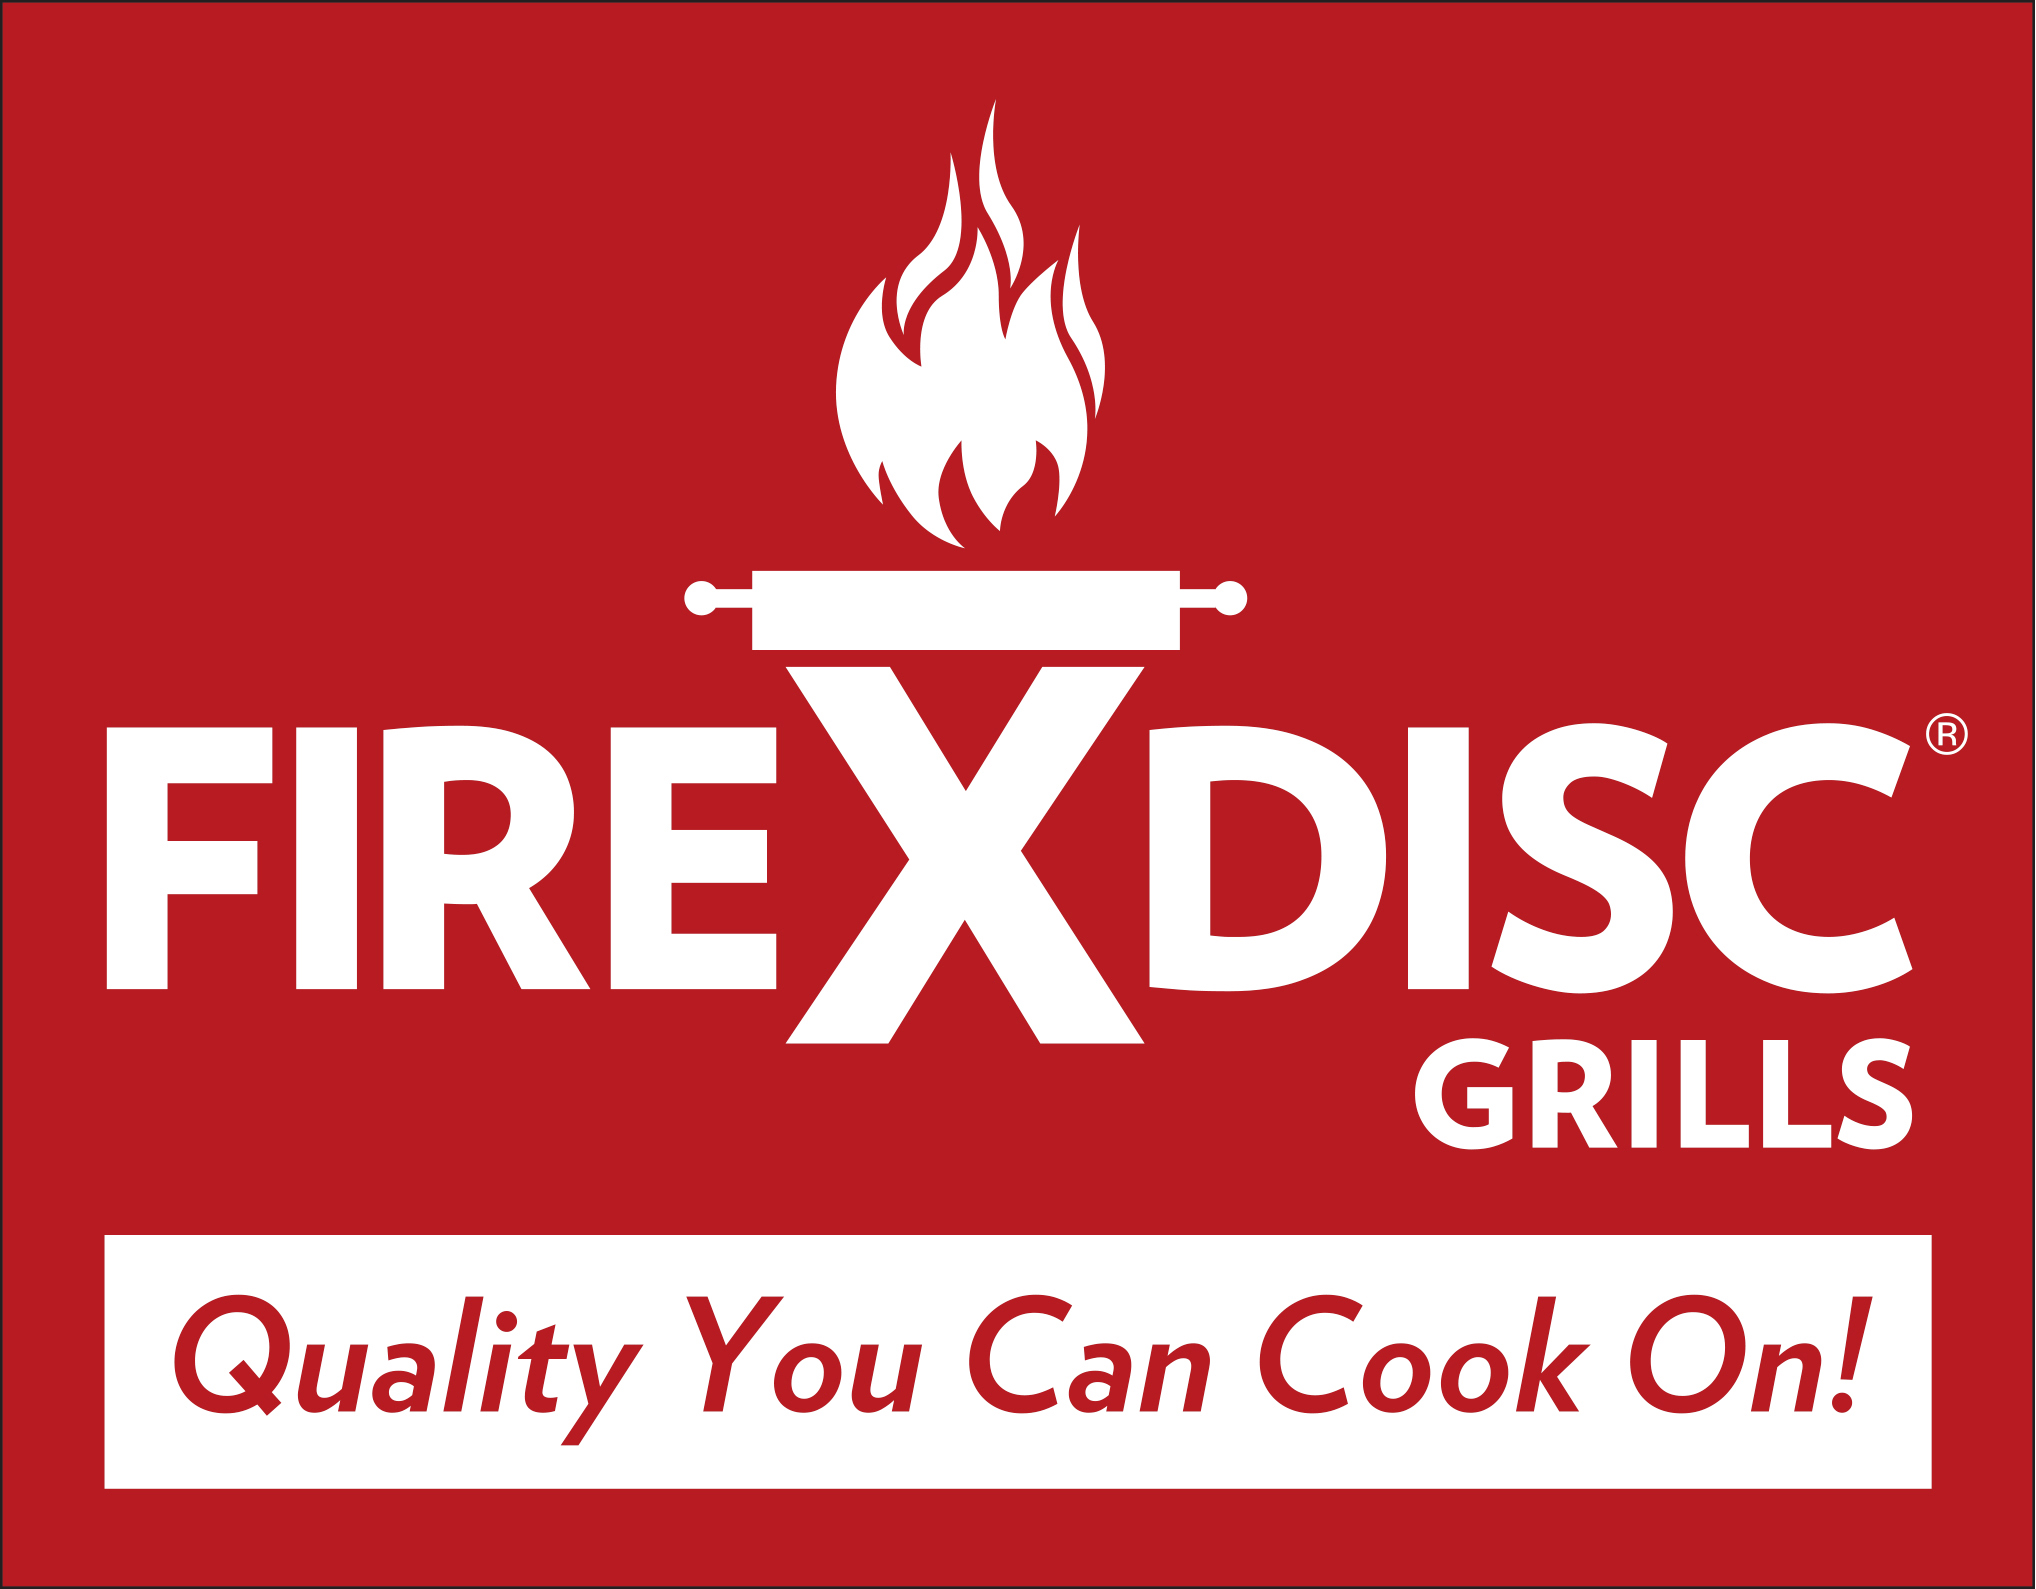 firedisc grills  makers of portable gas disc grills to participate at hpbexpo 2015 in nashville